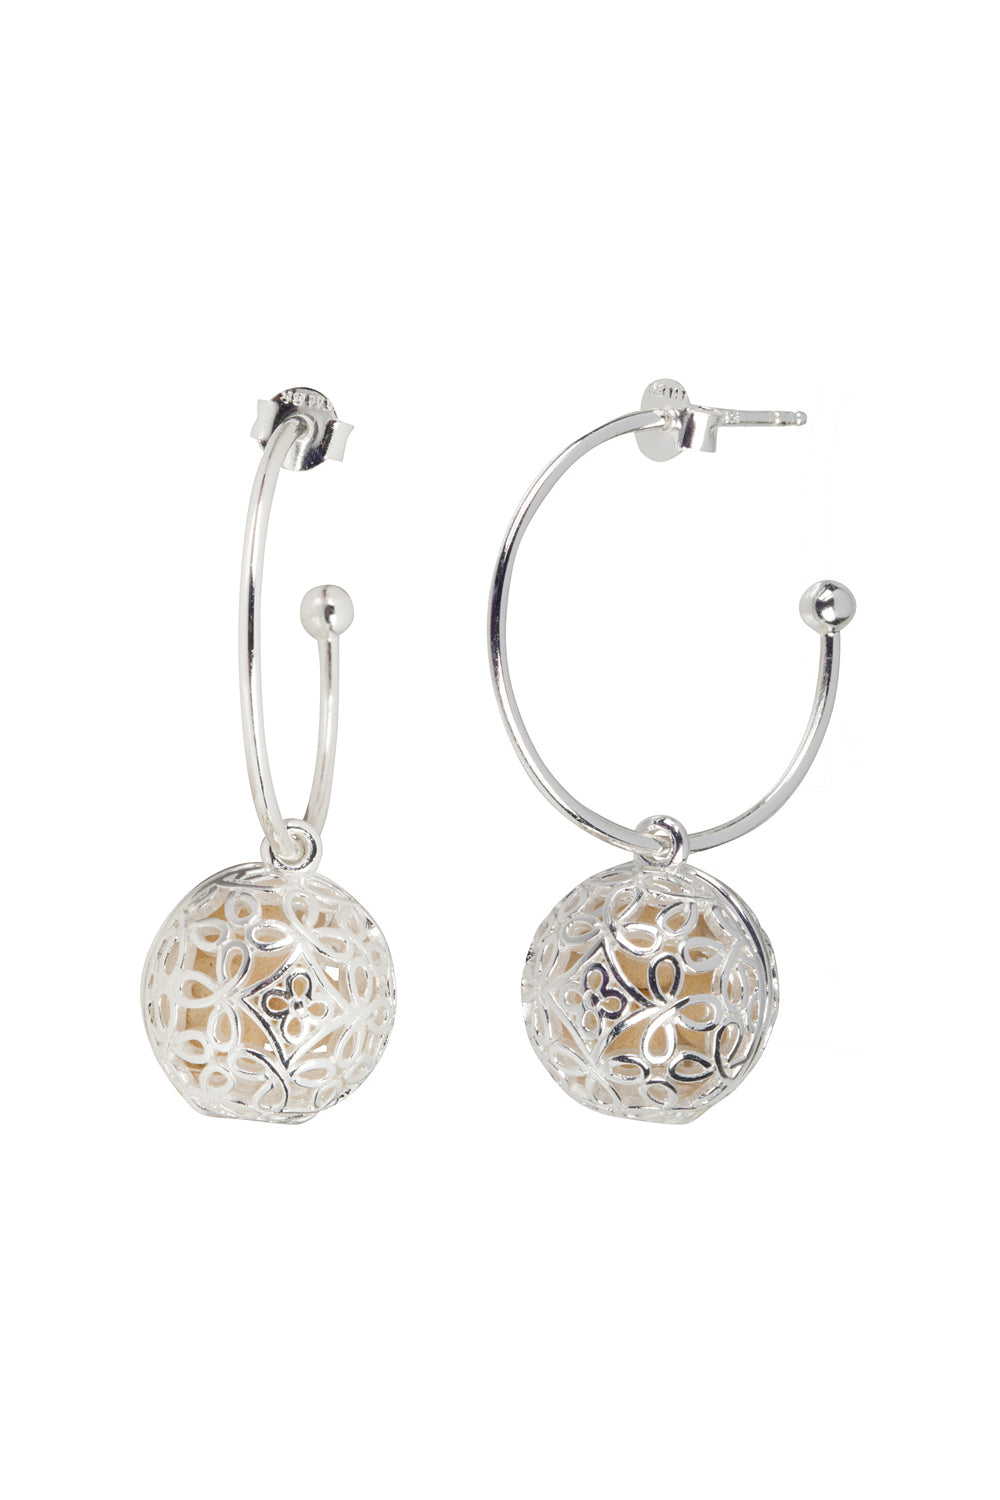 Boho Hoop Fragrance Earrings with Silver Tone Charm